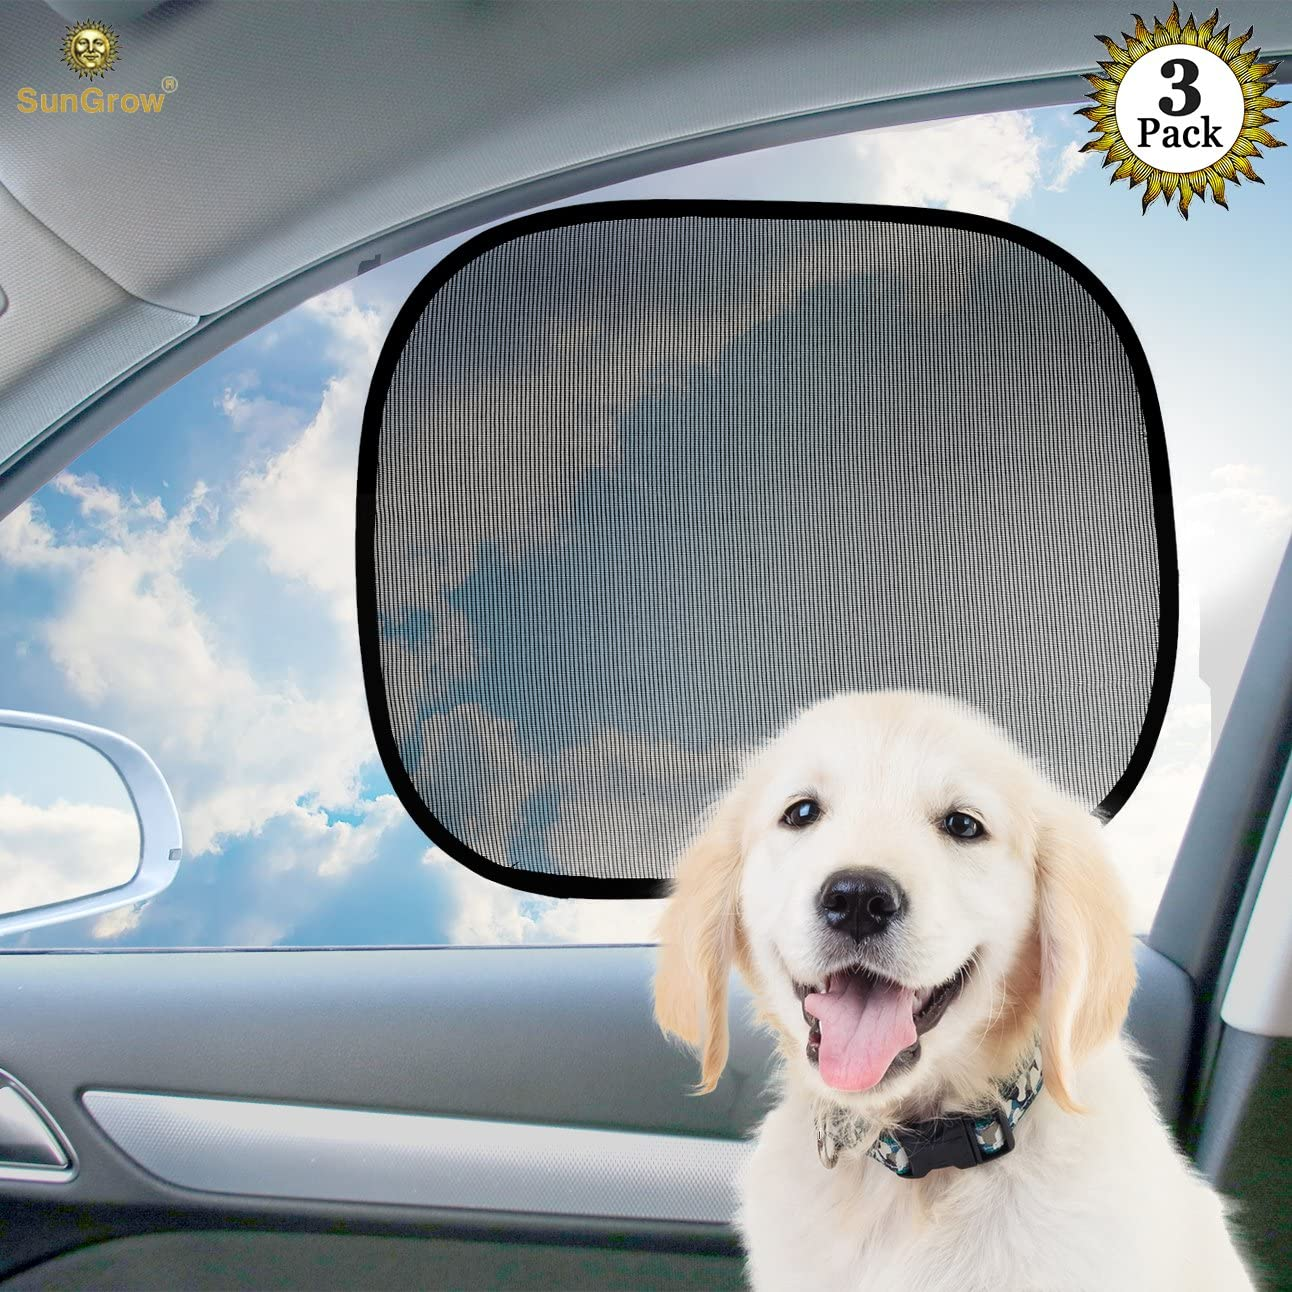 SunGrow Car Sun Shade, Covers and Protects Passengers, Cell Phones, and Interior from Harmful Rays, Ideal for Side and Rear Windows, Keep Interior Cool, Premium Quality PVC, 3 Pack